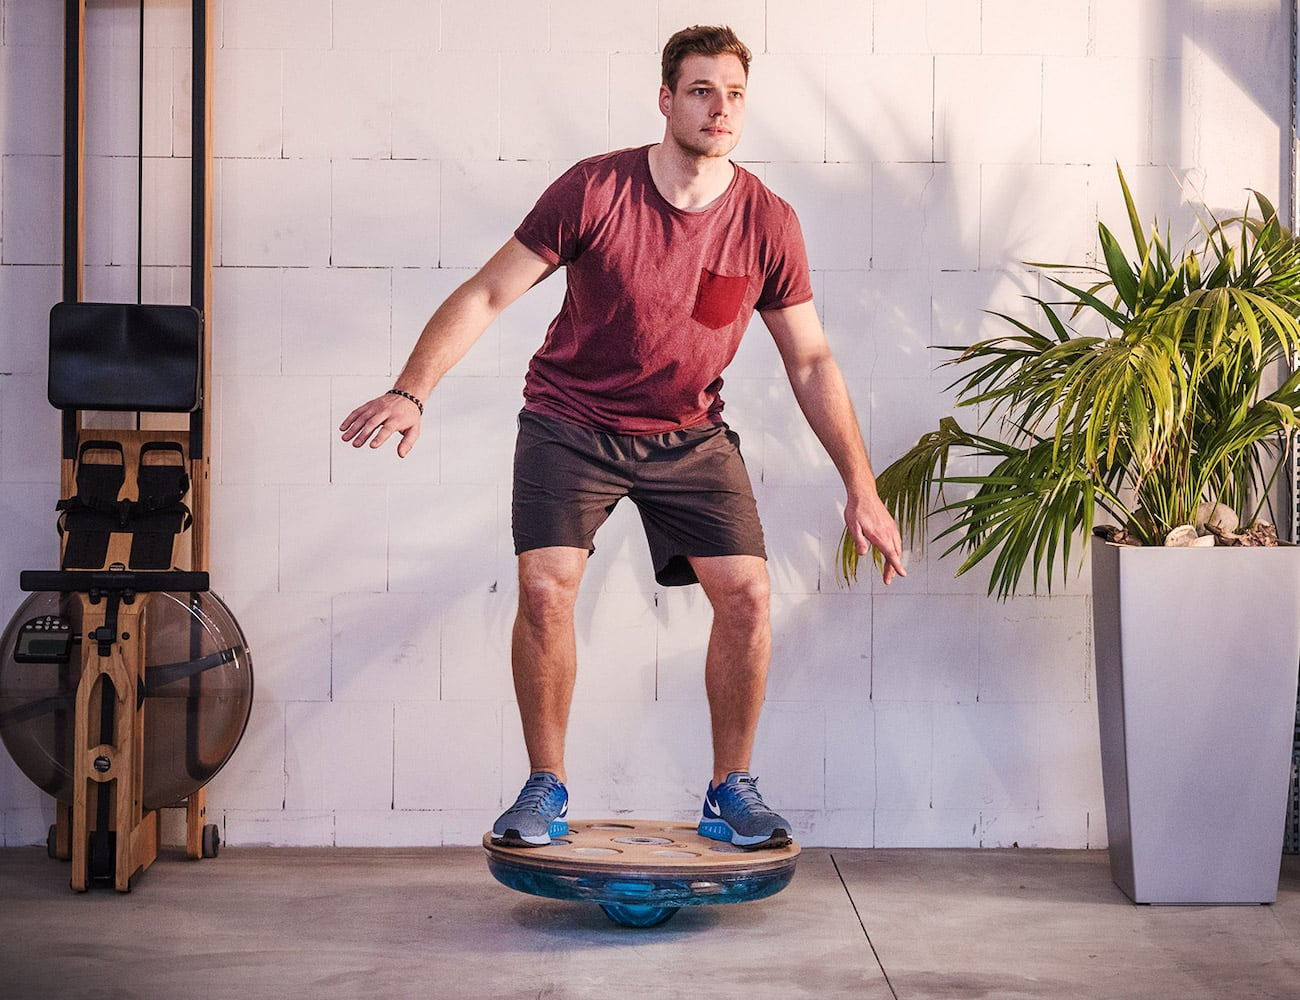 NOHrD Eau-Me Board Shifting Water Balance Board encourages spontaneous muscle response